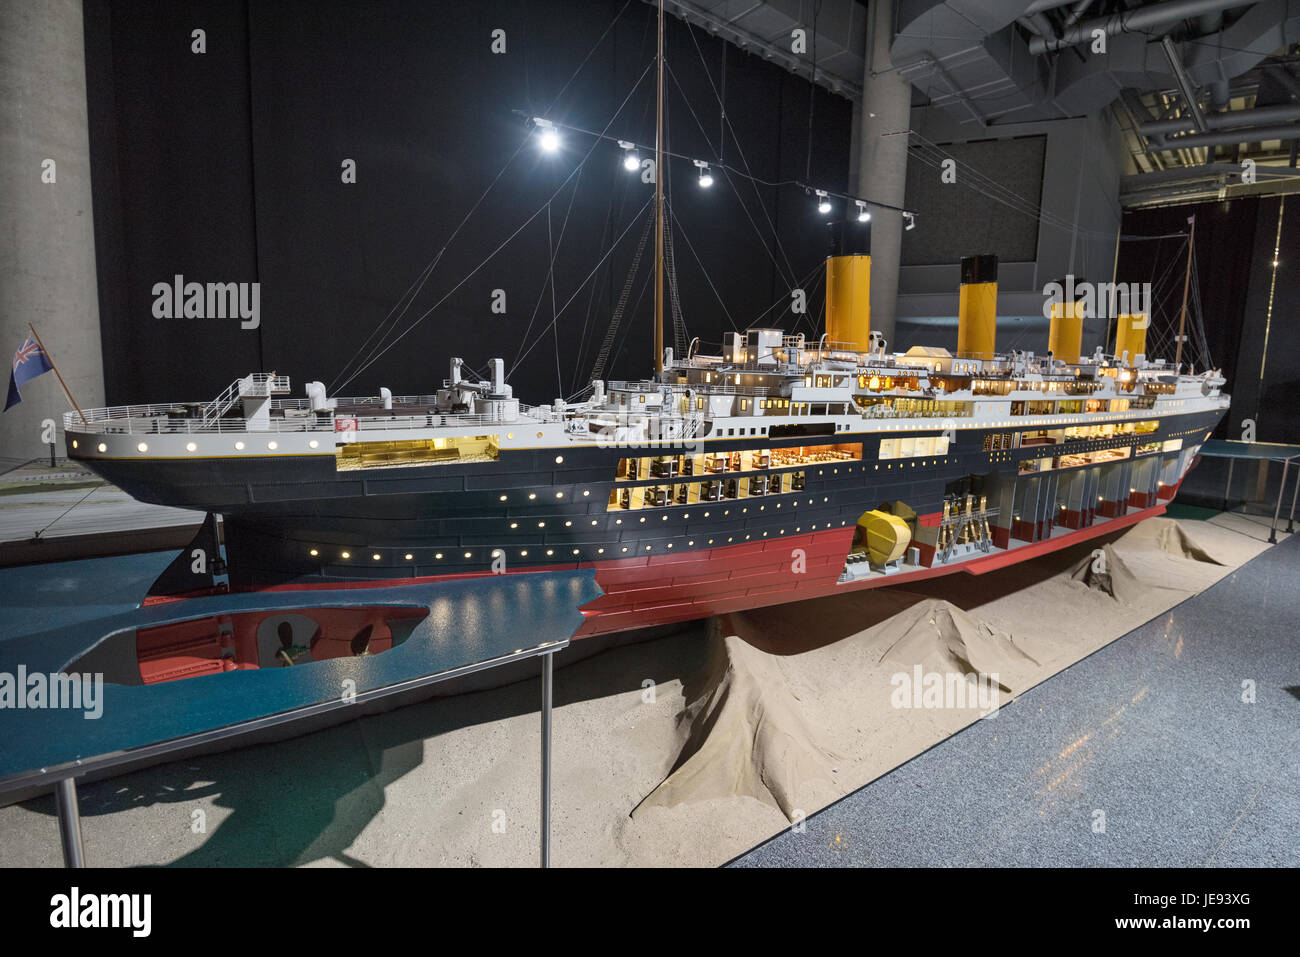 Bilbao, Spain - January 4, 2017: Titanic exhibition on January 4, 2017 in Bilbao, Basque Country, Spain. - Stock Image